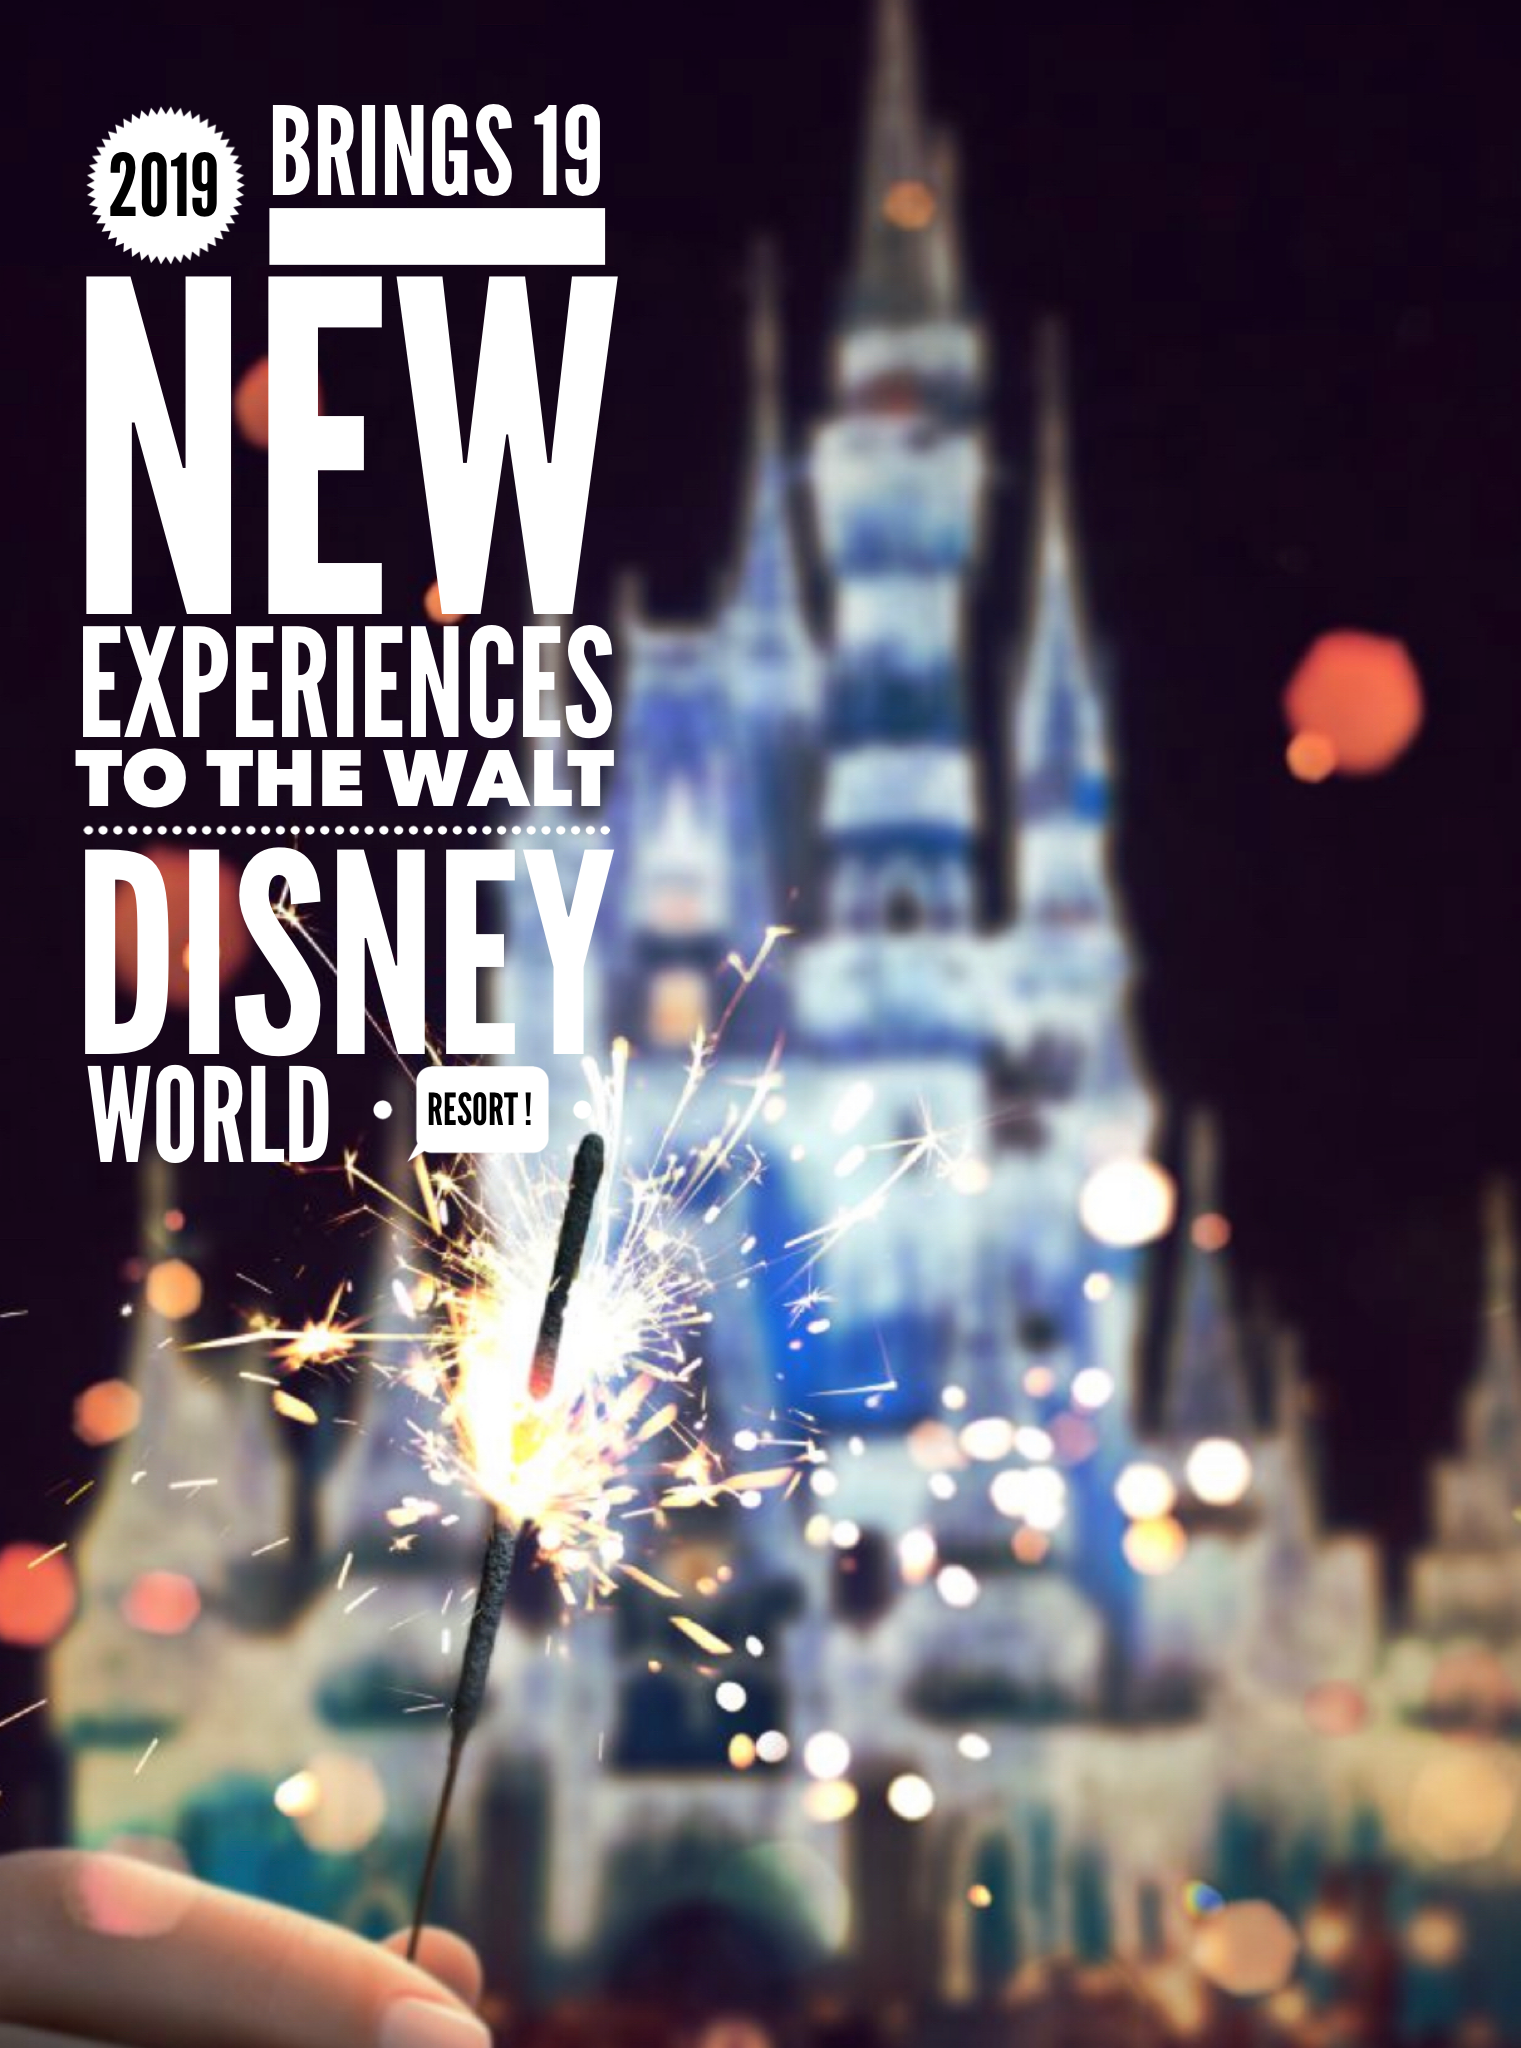 2019 Brings 19 New Experiences to the Walt Disney World Resort